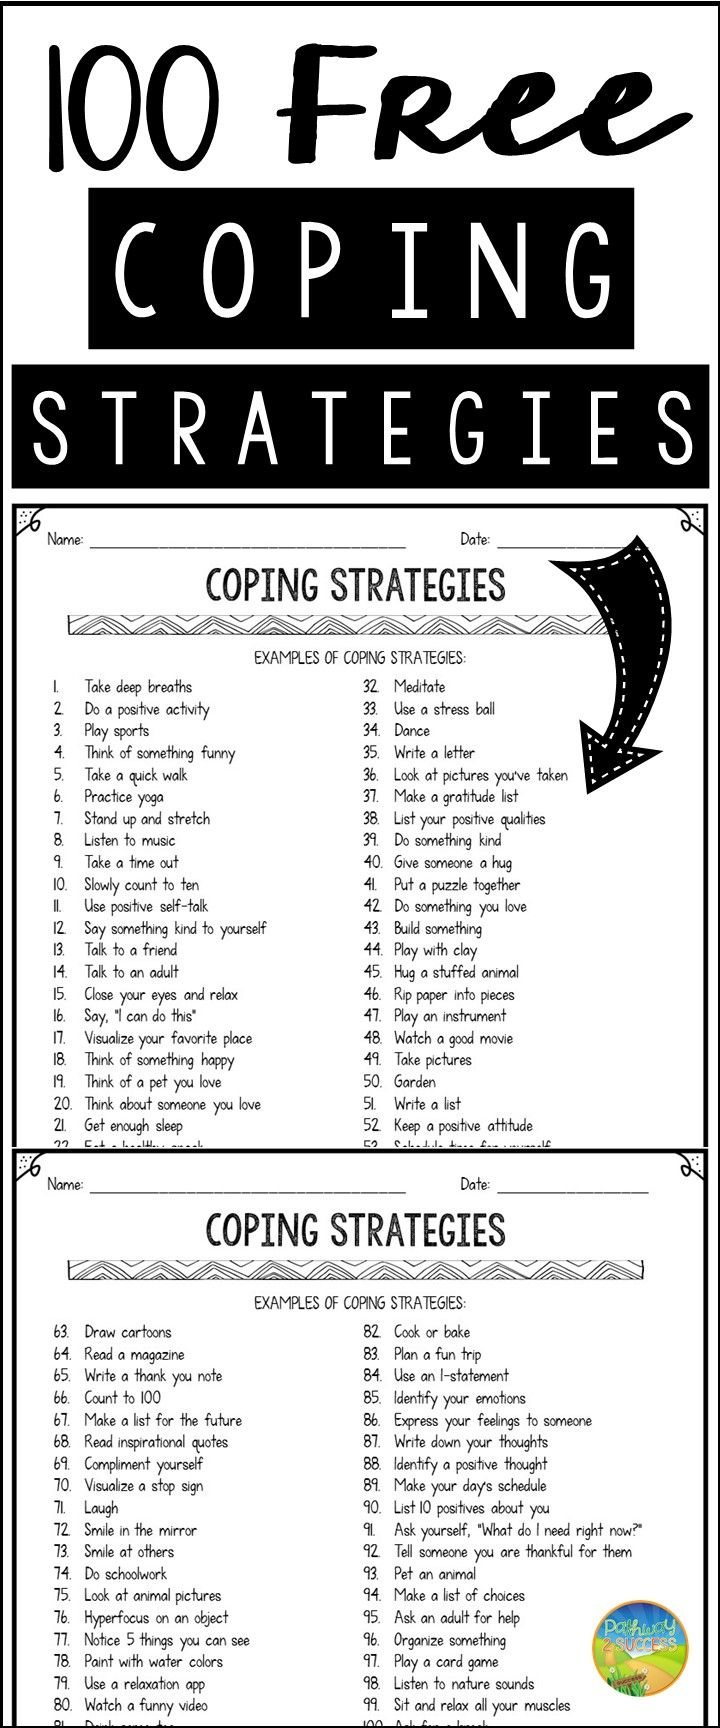 Worksheets Anger Management Therapy Worksheets best 25 anger management ideas on pinterest issues 100 free coping strategies for anxiety depression and more therapists therapy clients